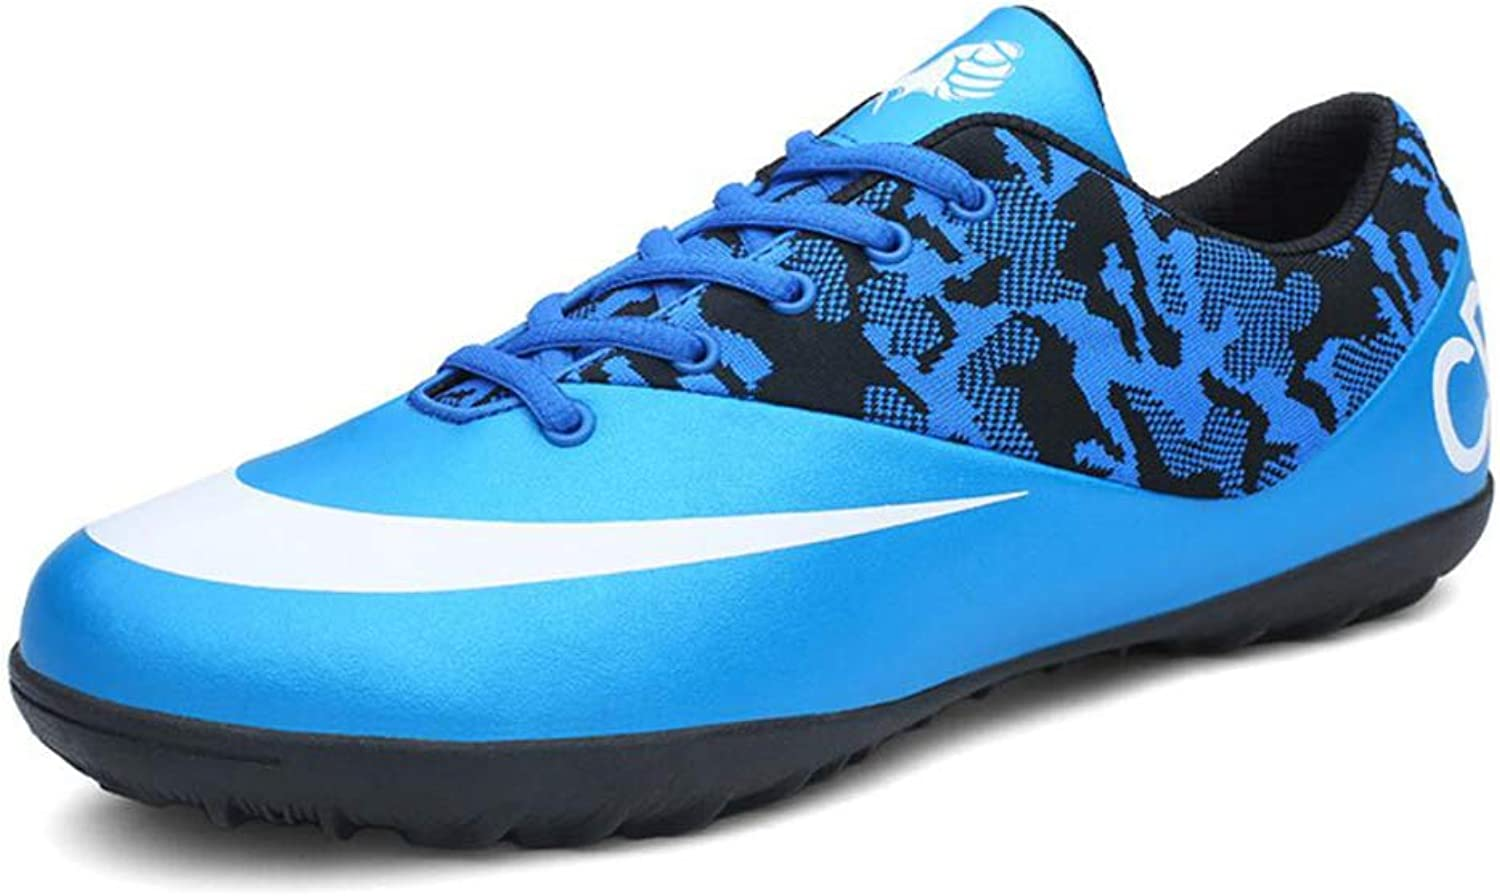 Men's Soccer shoes Soccer Cleats Comfort Football Boots Football Soccer Anti-Slip, Personality Low-Top Women's Sneakers, Non-Slip,Short Spike Training shoes (color   A, Size   39)